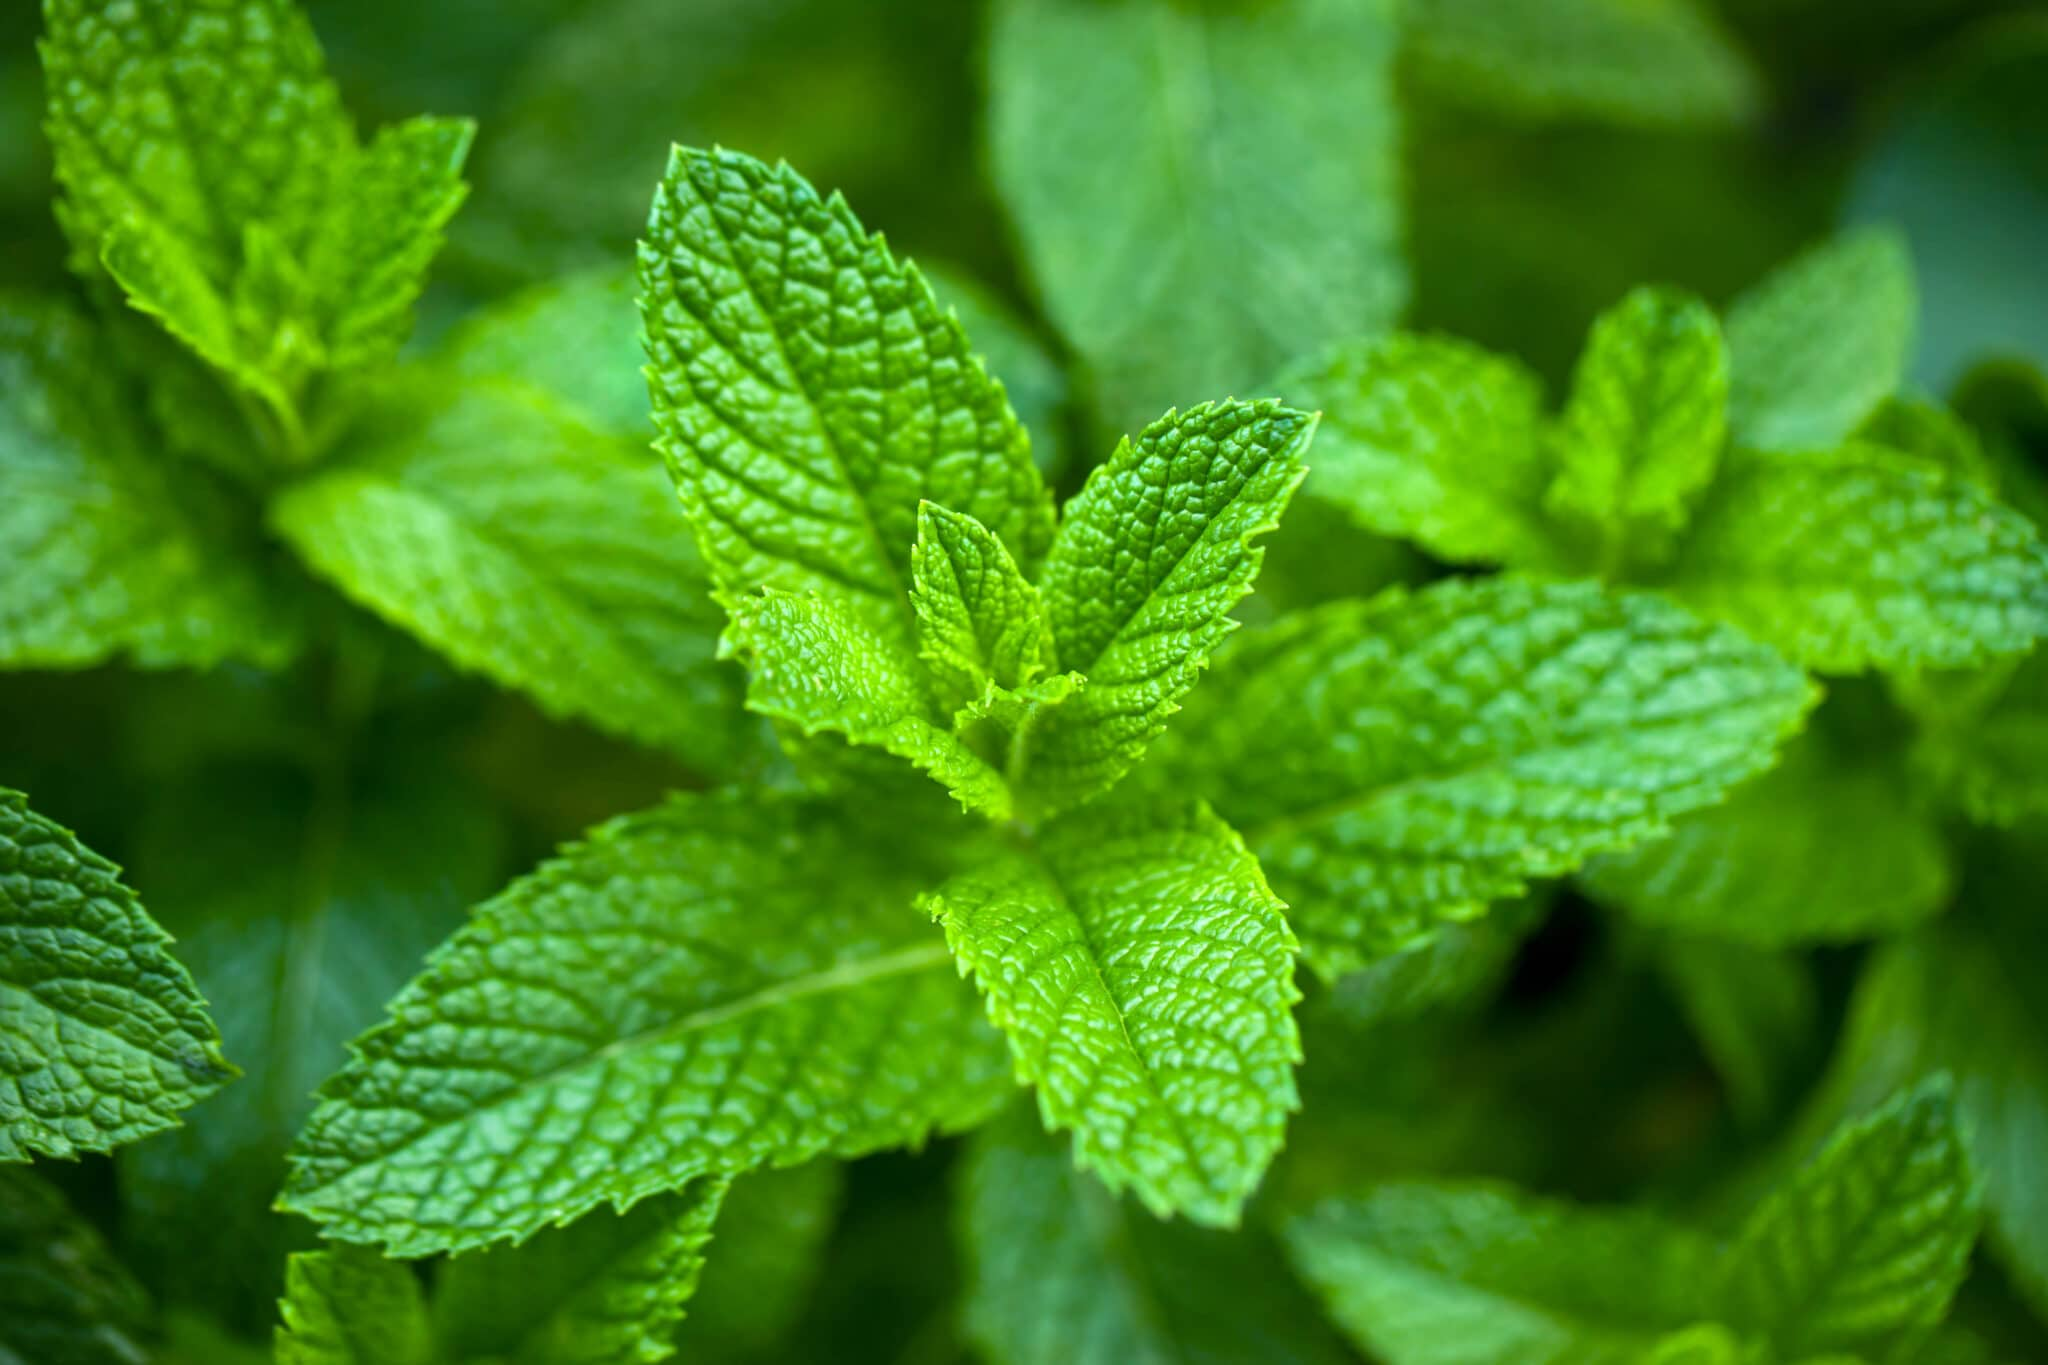 Closeup of a spearmint plant to show how it's spear shaped leaves can be used to differentiate it from other types of mint.